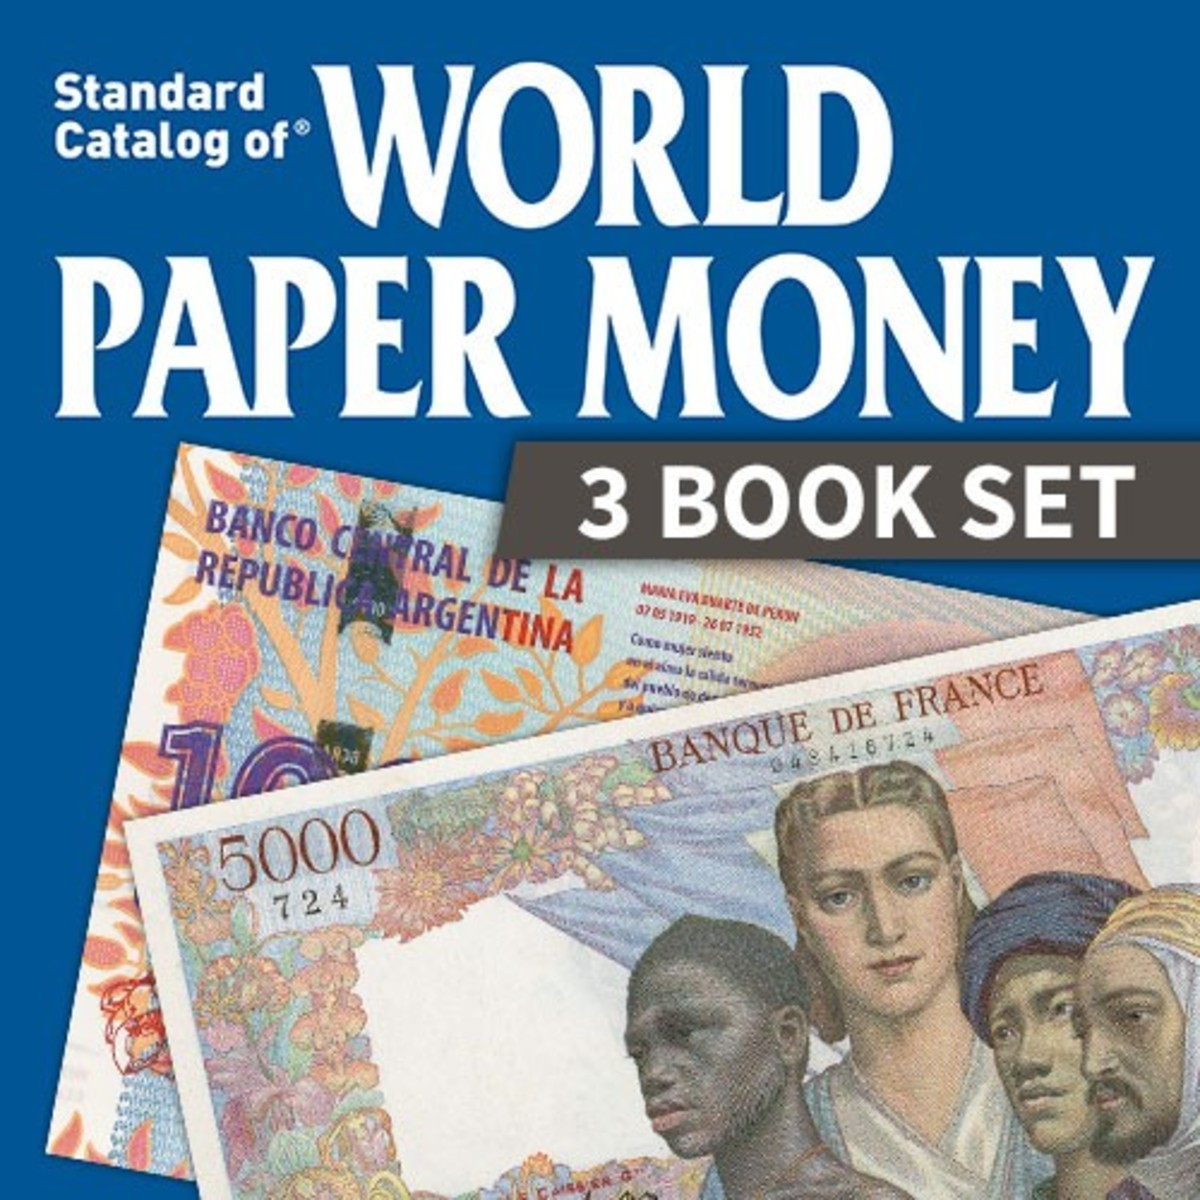 Are you interested in pricing your collection of money from around the globe?